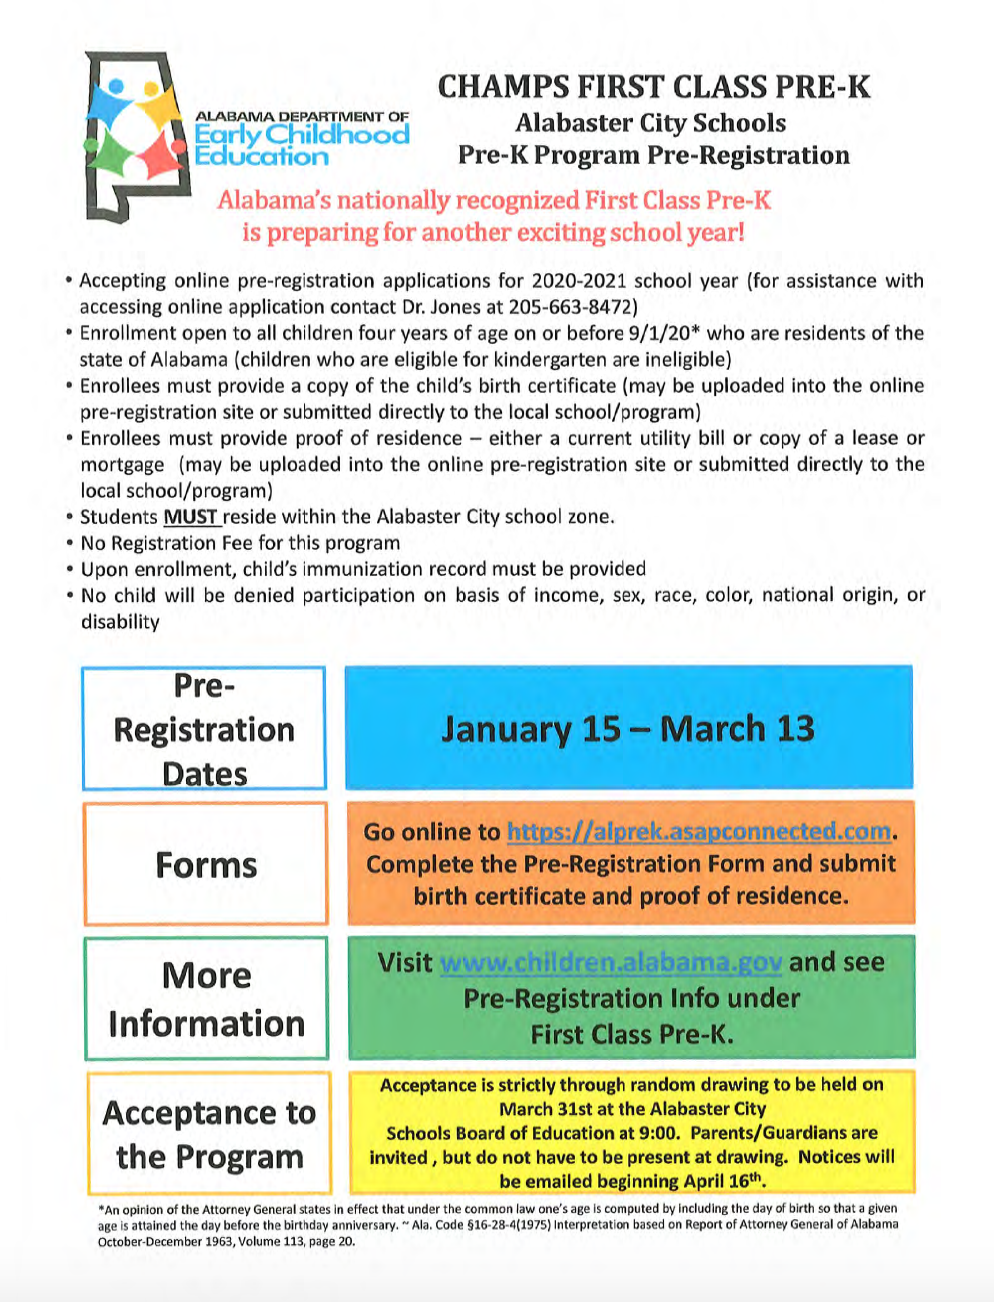 Pre-K Pre-Registration Forms for 2020-2021